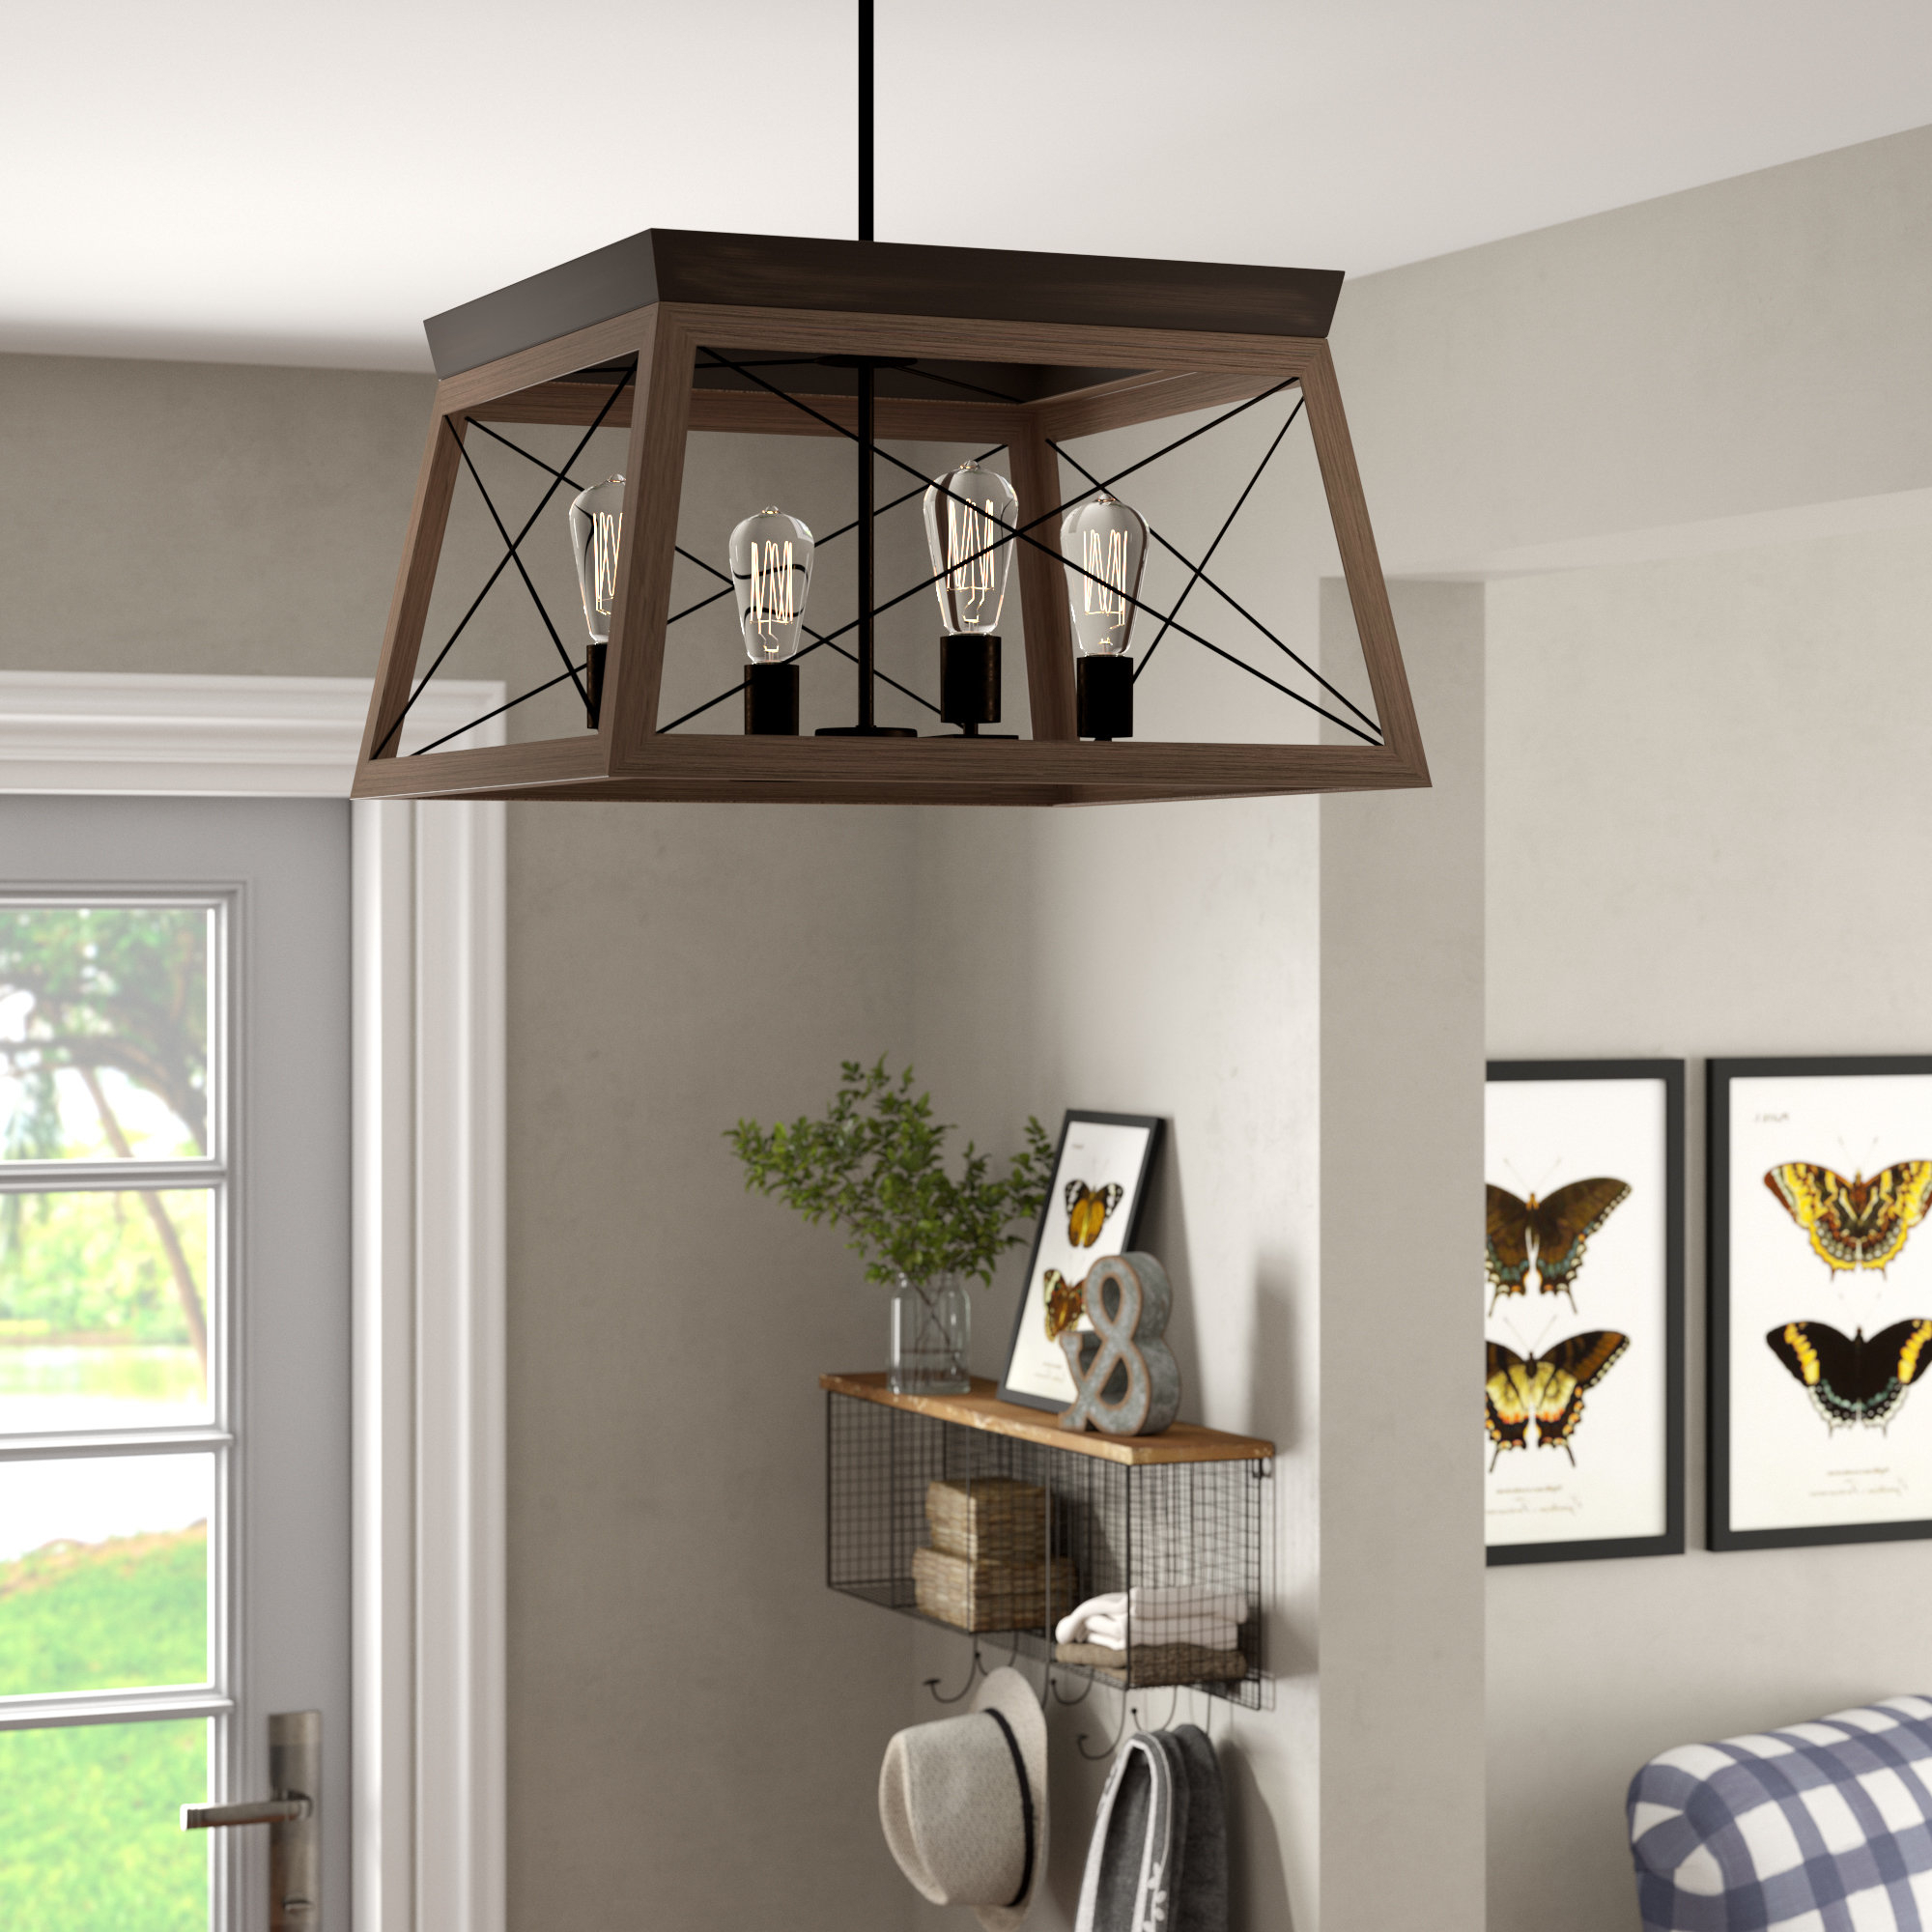 [%Square & Rectangular Chandeliers Sale – Up To 65% Off Until Inside Latest Hewitt 4 Light Square Chandeliers|Hewitt 4 Light Square Chandeliers Within Current Square & Rectangular Chandeliers Sale – Up To 65% Off Until|Trendy Hewitt 4 Light Square Chandeliers For Square & Rectangular Chandeliers Sale – Up To 65% Off Until|Latest Square & Rectangular Chandeliers Sale – Up To 65% Off Until With Hewitt 4 Light Square Chandeliers%] (View 2 of 25)